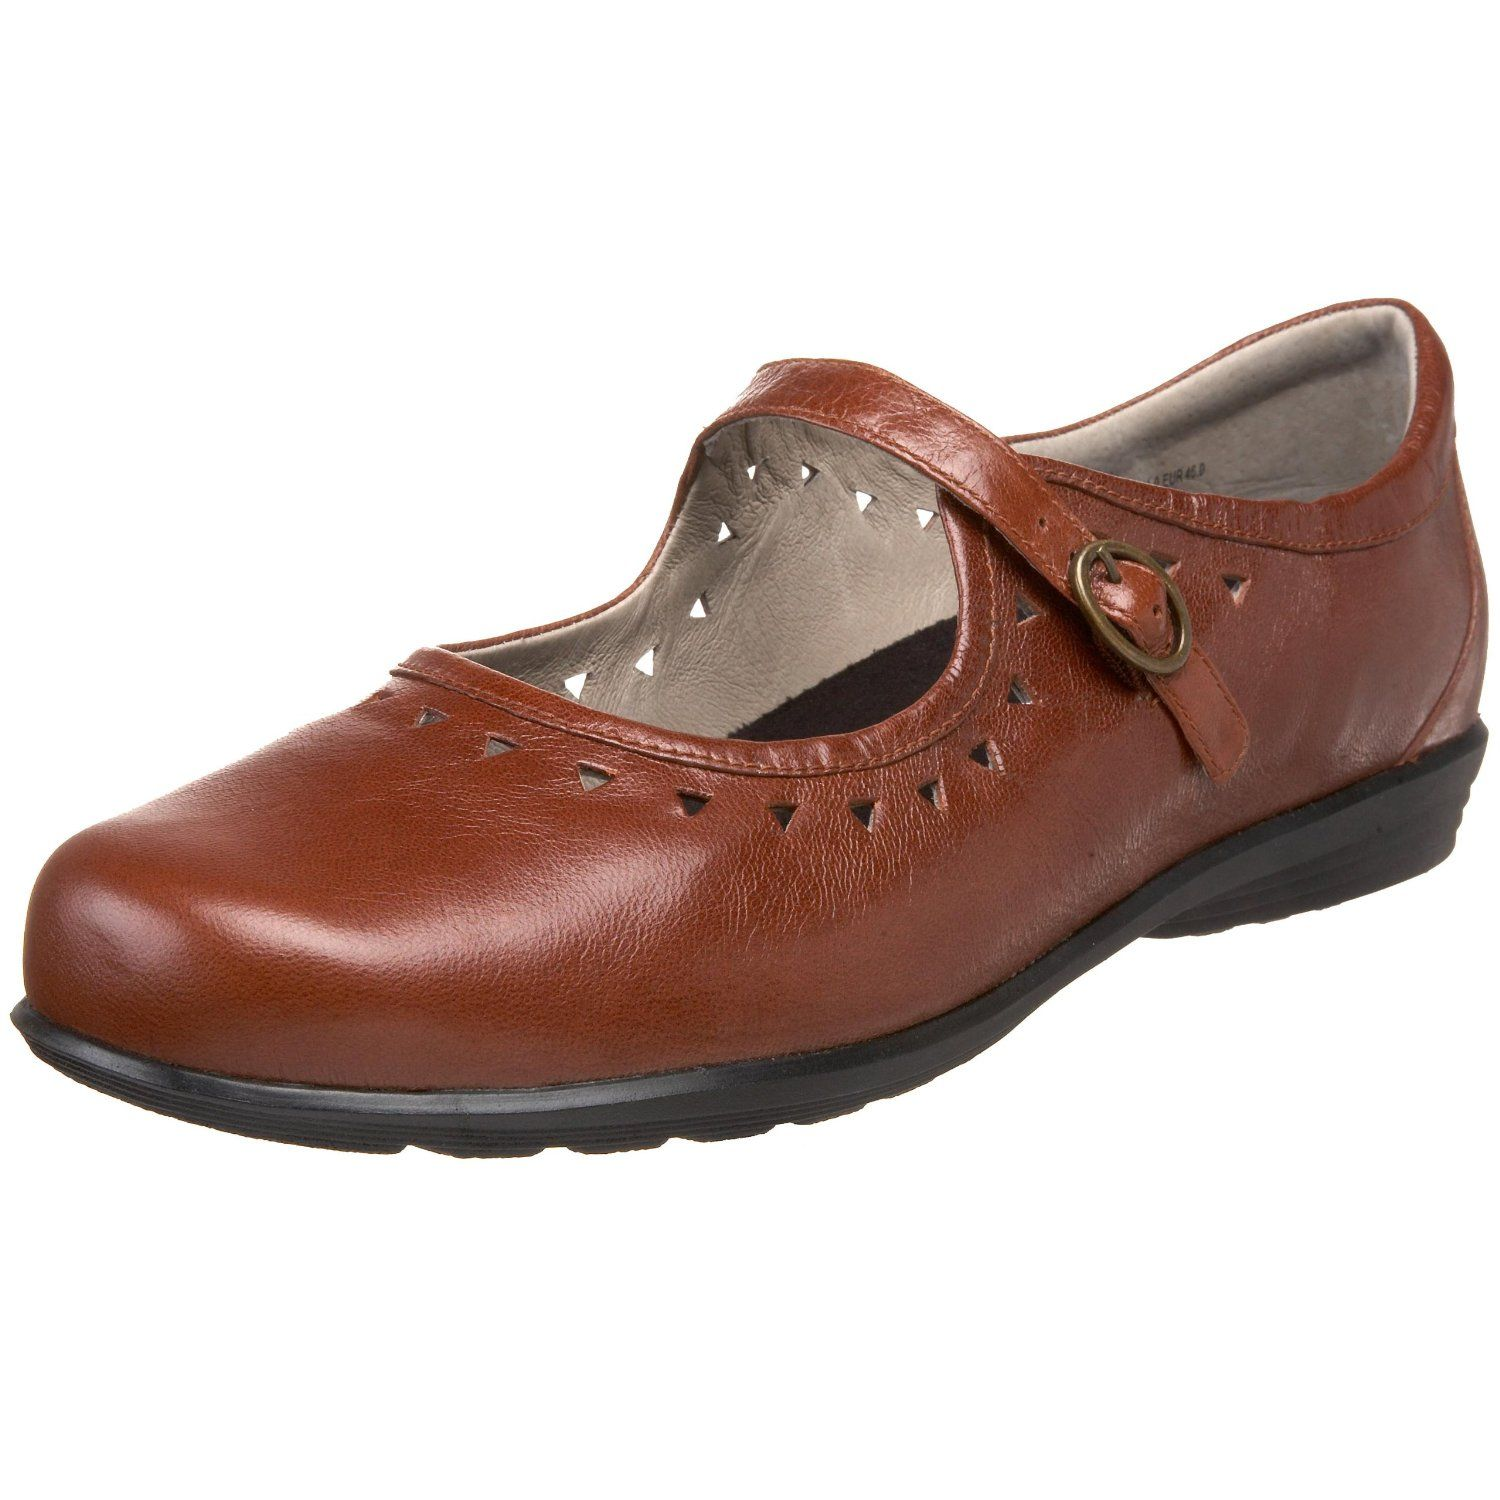 Aetrex Women's Chloe - designer shoes, handbags, jewelry, watches, and fashion accessories   endless.com